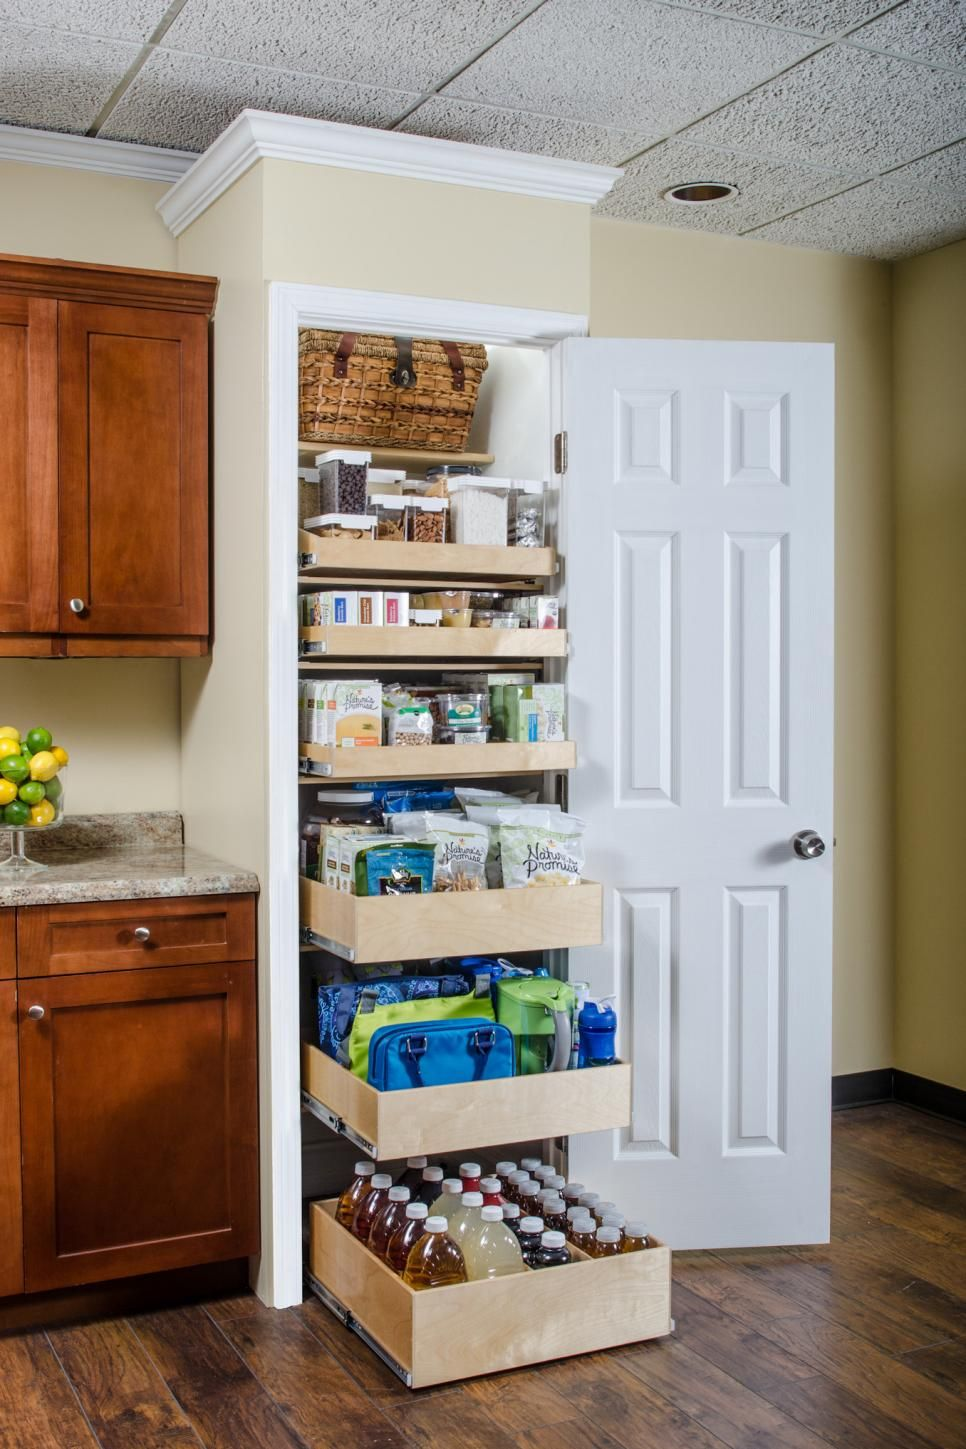 Best Way To Organize Kitchen Pantry